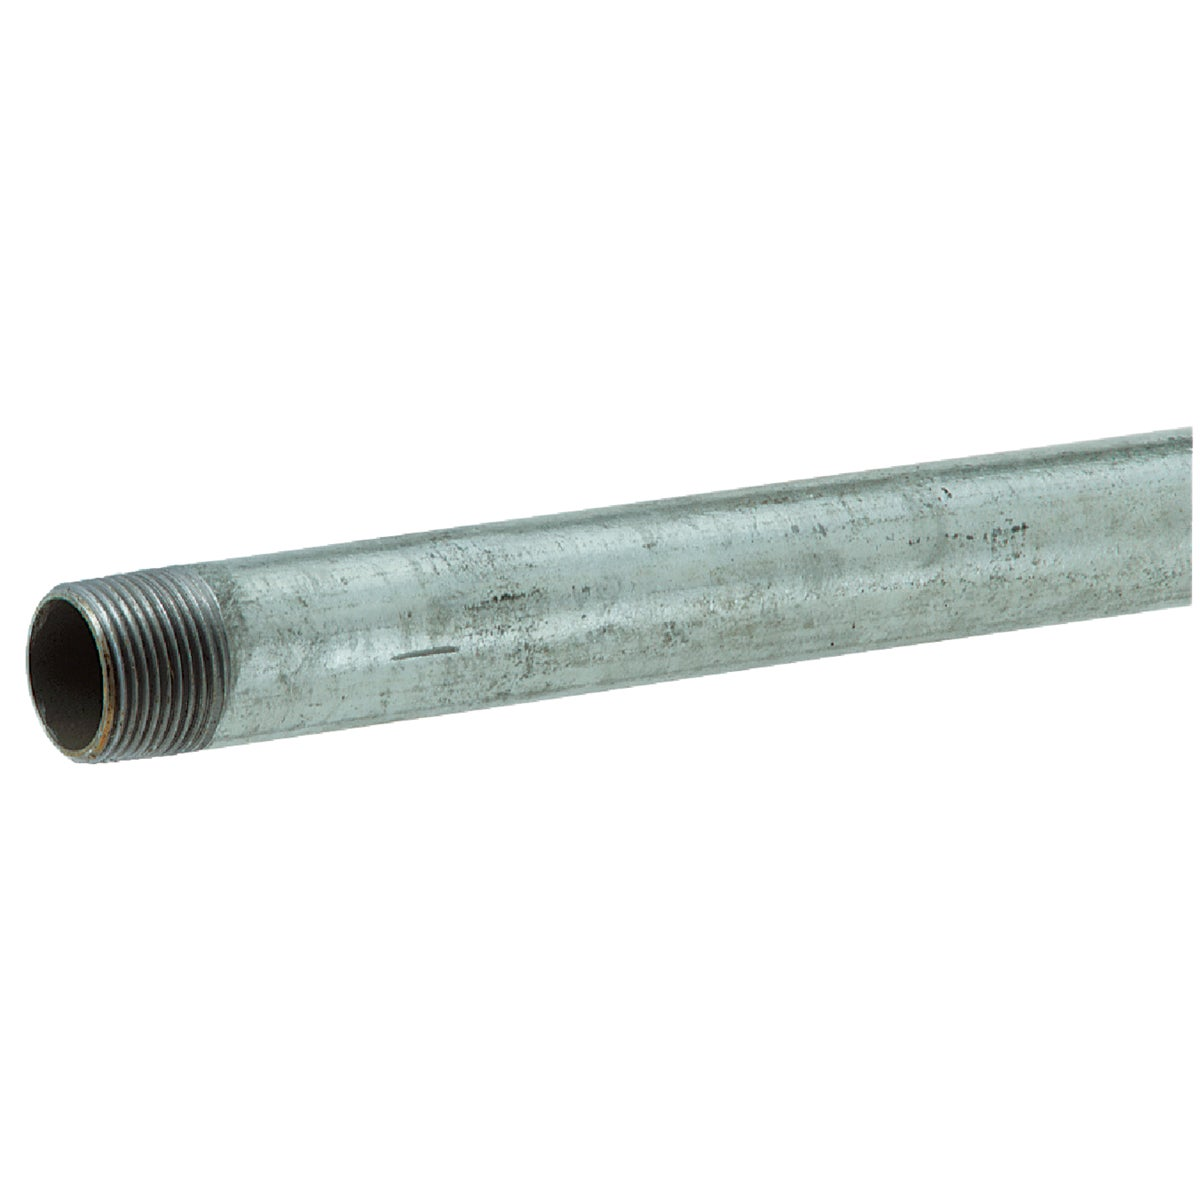 1/2X36 GALV RDI-CT PIPE - 1/2X36 by Southland Pipe Nippl